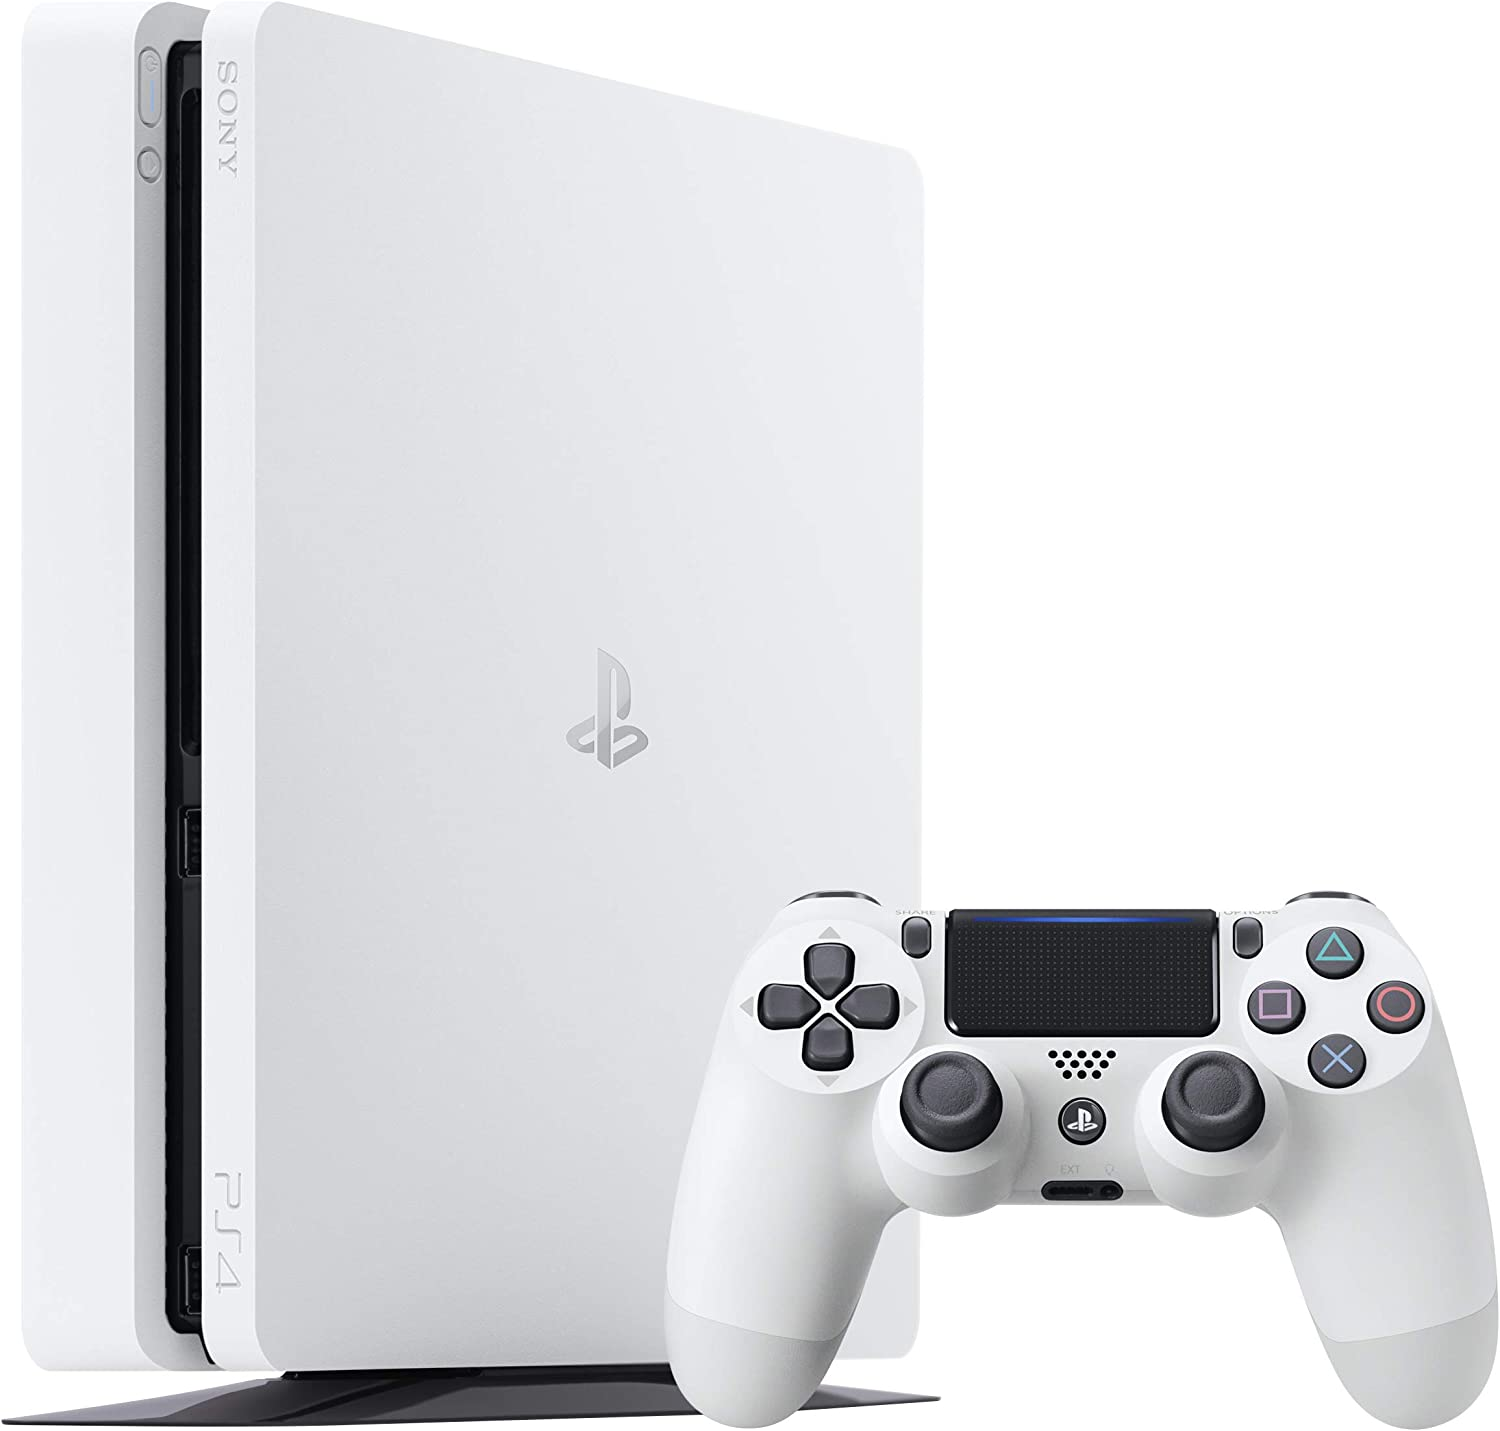 Sony PS4 500GB Slim Glacier White Blanco Wifi - Videoconsolas (PlayStation 4, Blanco, 8192 MB, AMD Jaguar, AMD Radeon, Unidad de disco duro): Amazon.es: Videojuegos